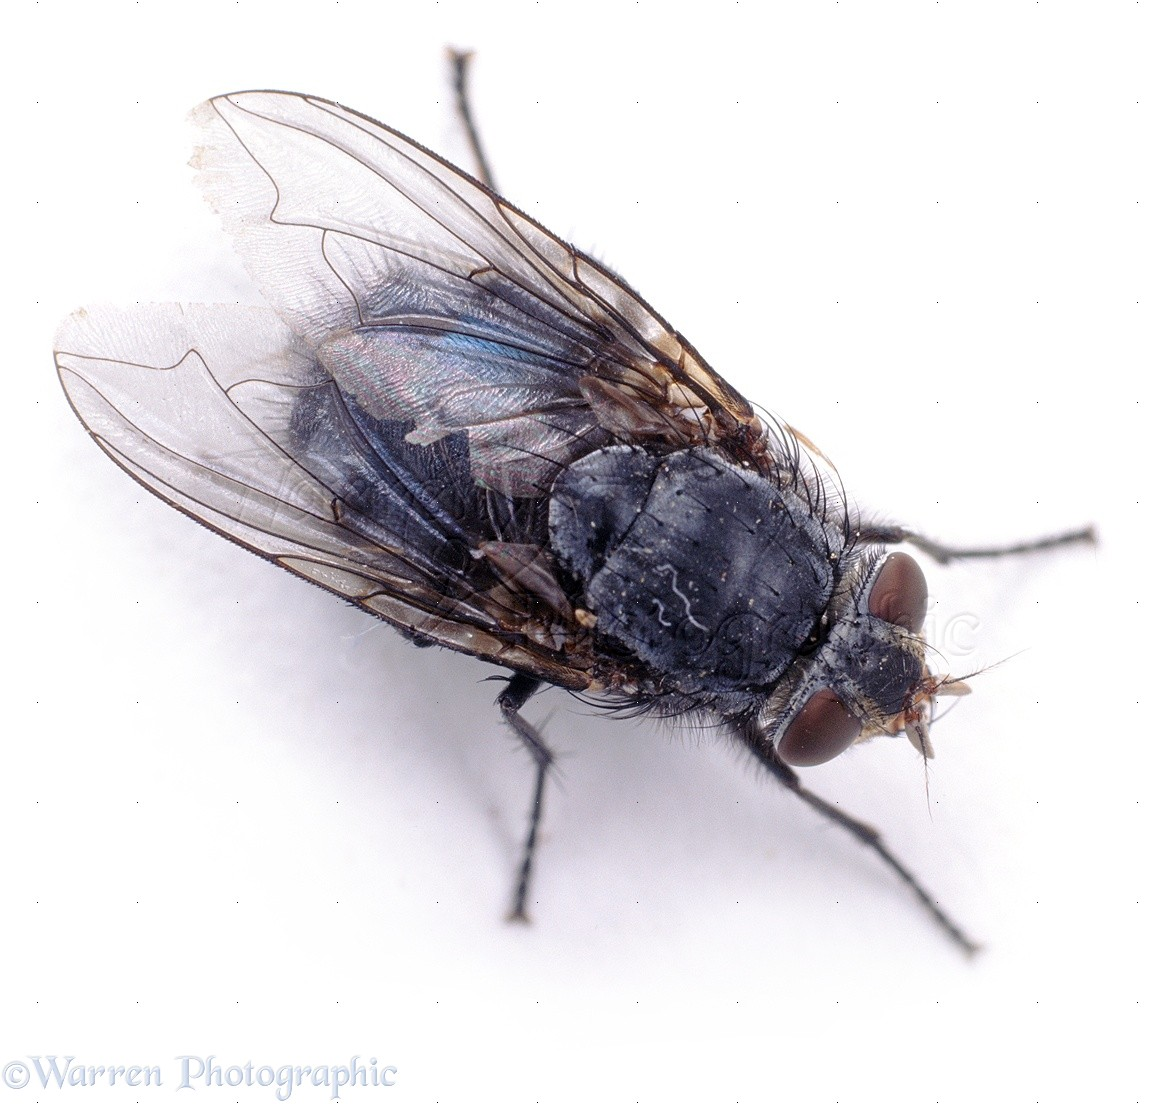 Wp06808 bluebottle fly ( calliphora vomitoria )